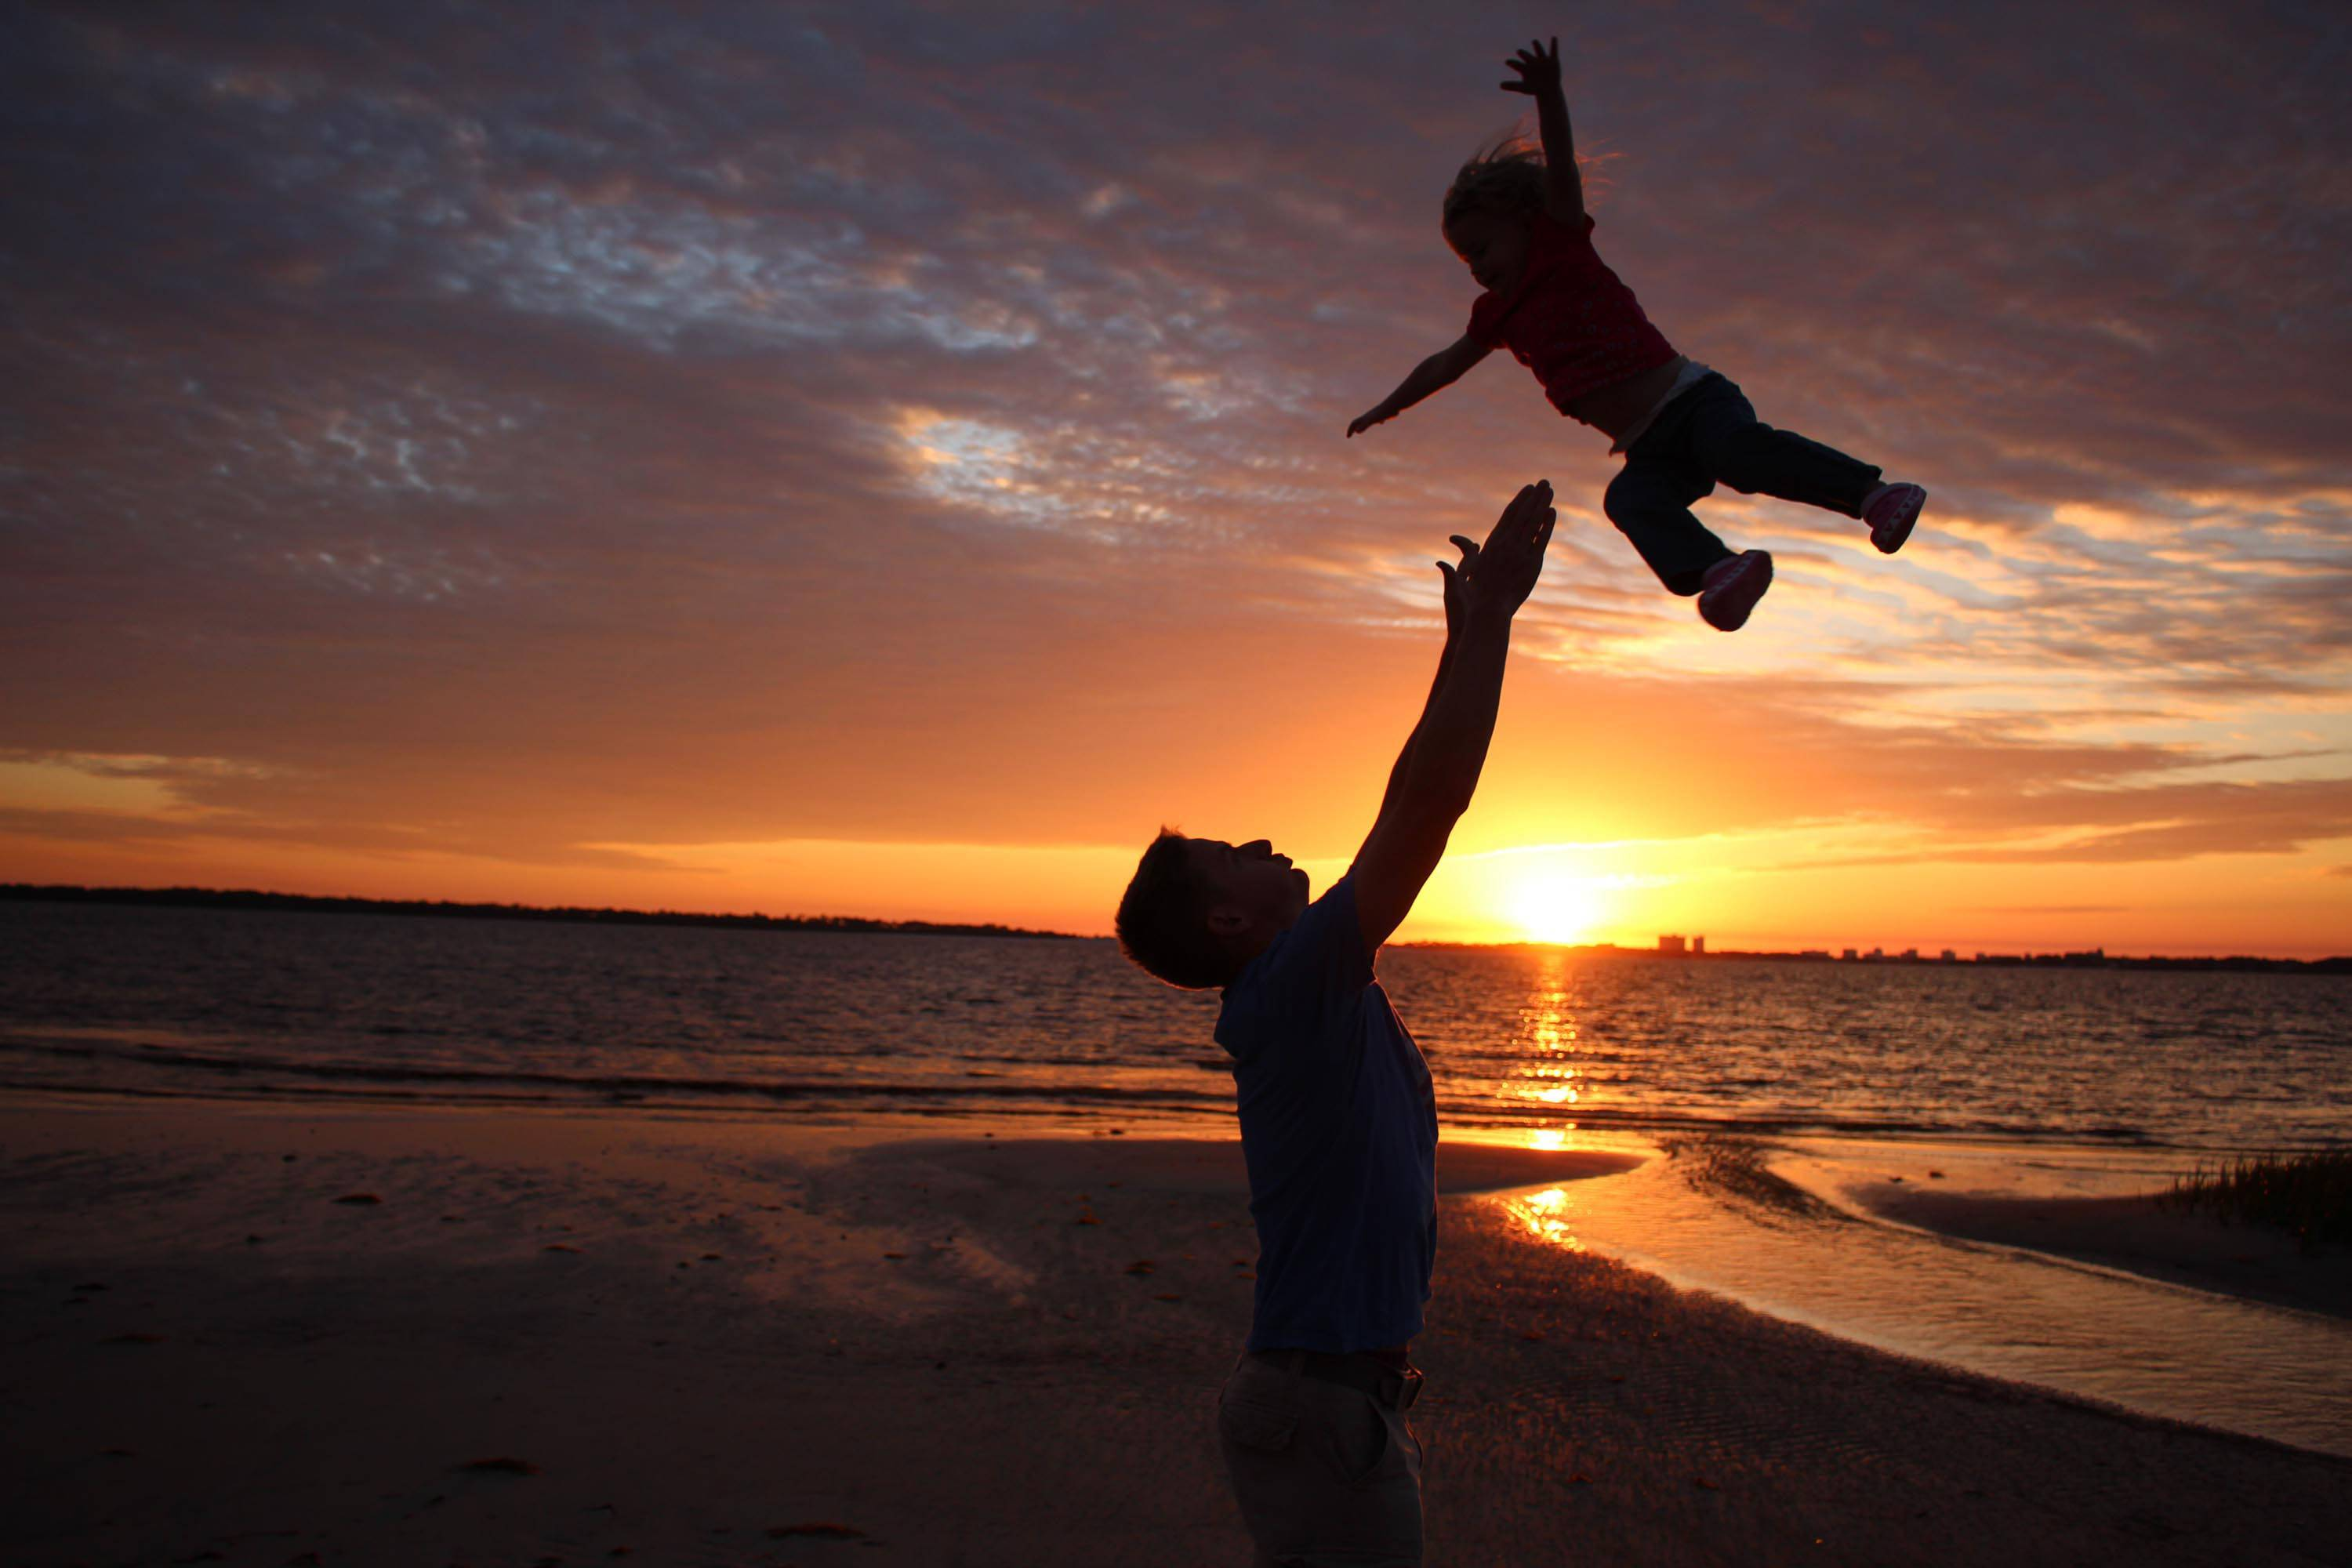 This photo was taken of my son, Lt. Col. Patrick Godfrey tossing his daughter in the air at sunset at Tyndall Air Force Base in Panama City, FL when I was visiting recently.